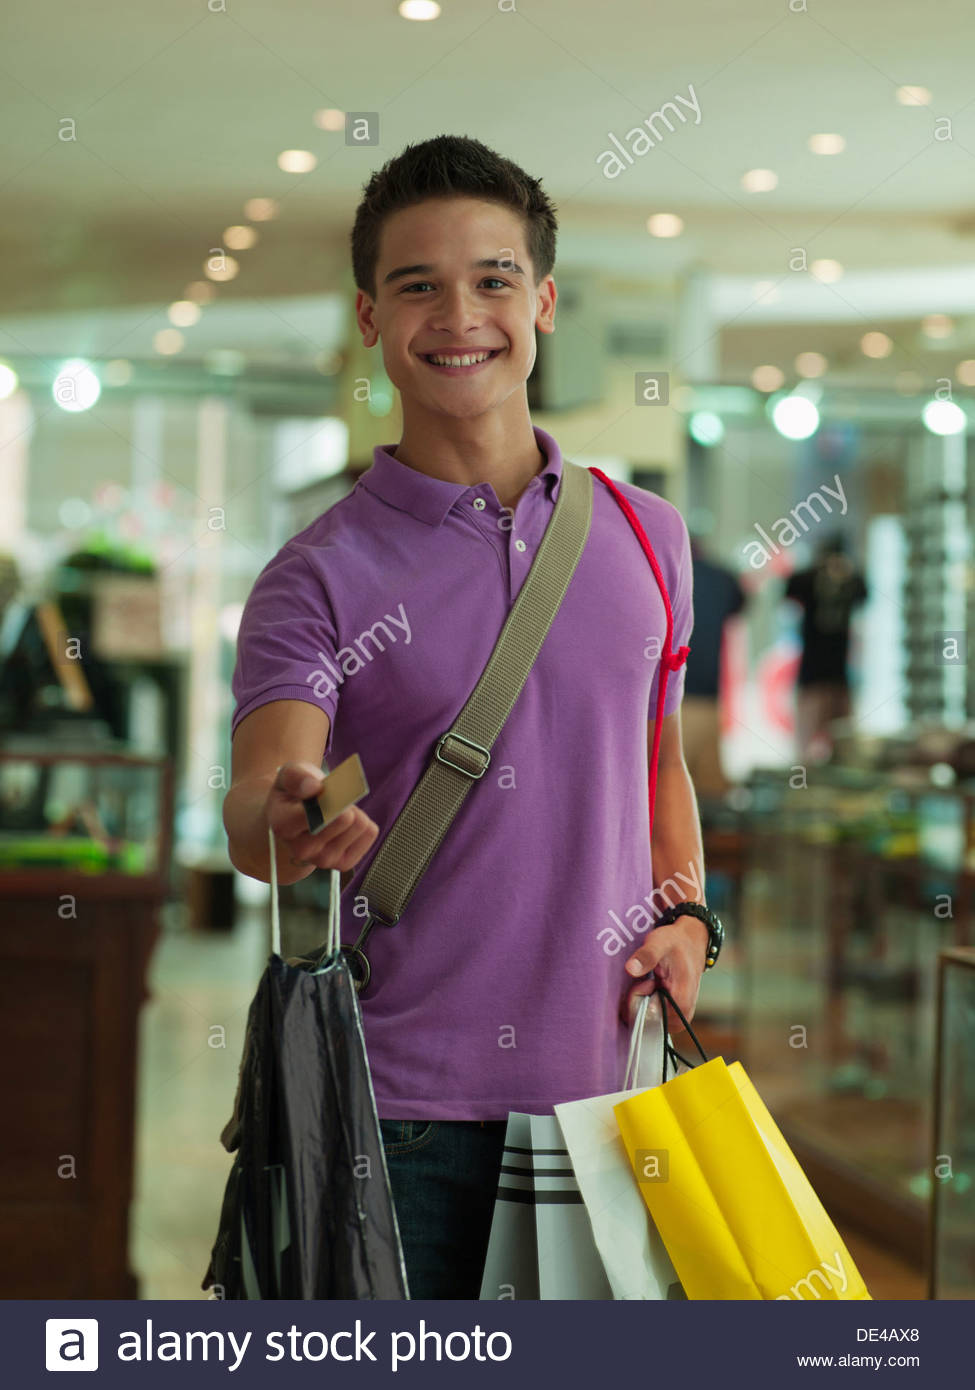 Smiling man display credit card  with carrying shopping bags in store - Stock Image